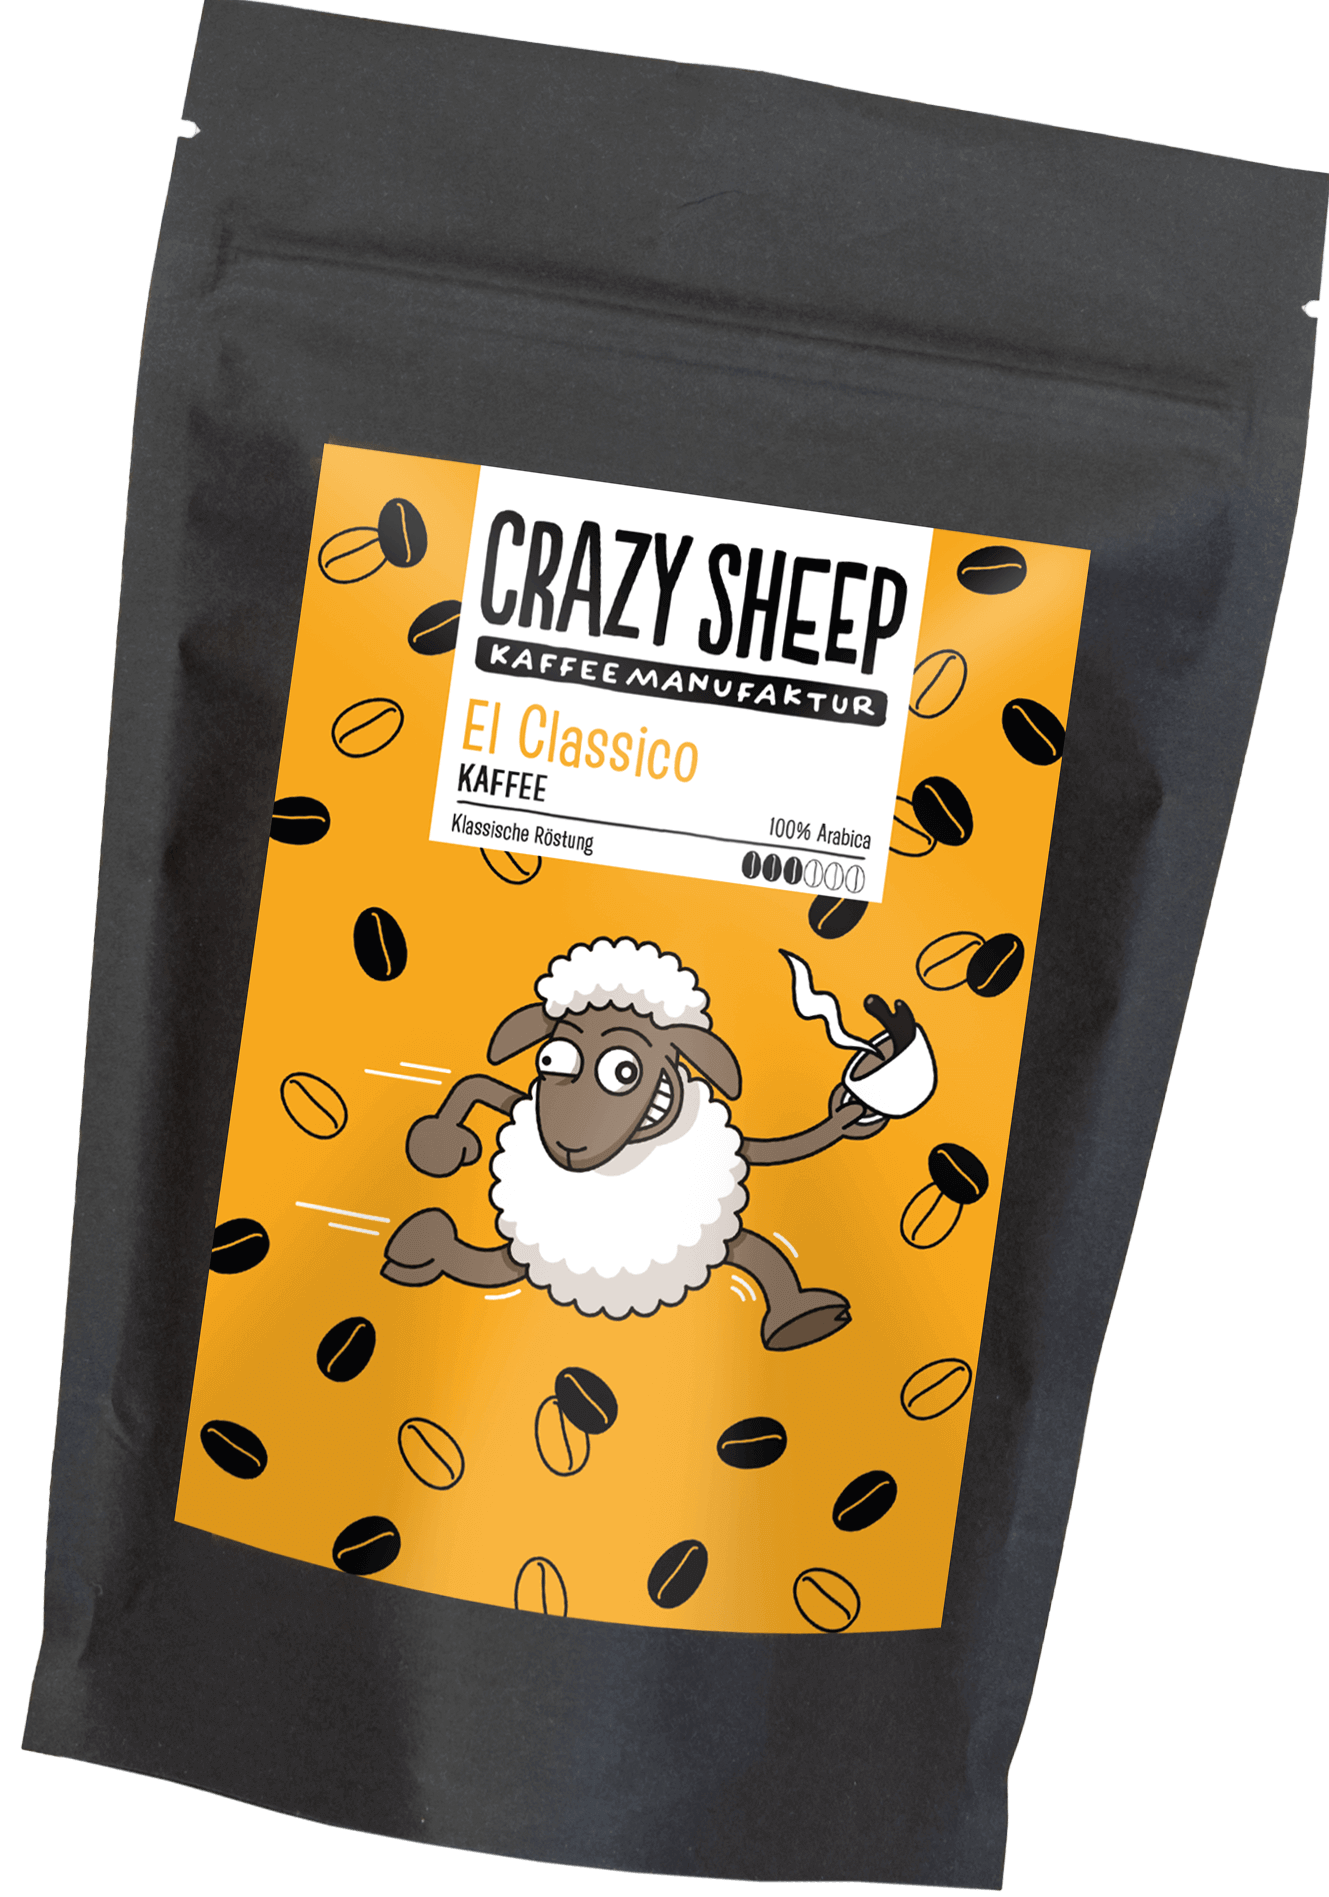 El Classico Crazy Sheep Kaffee